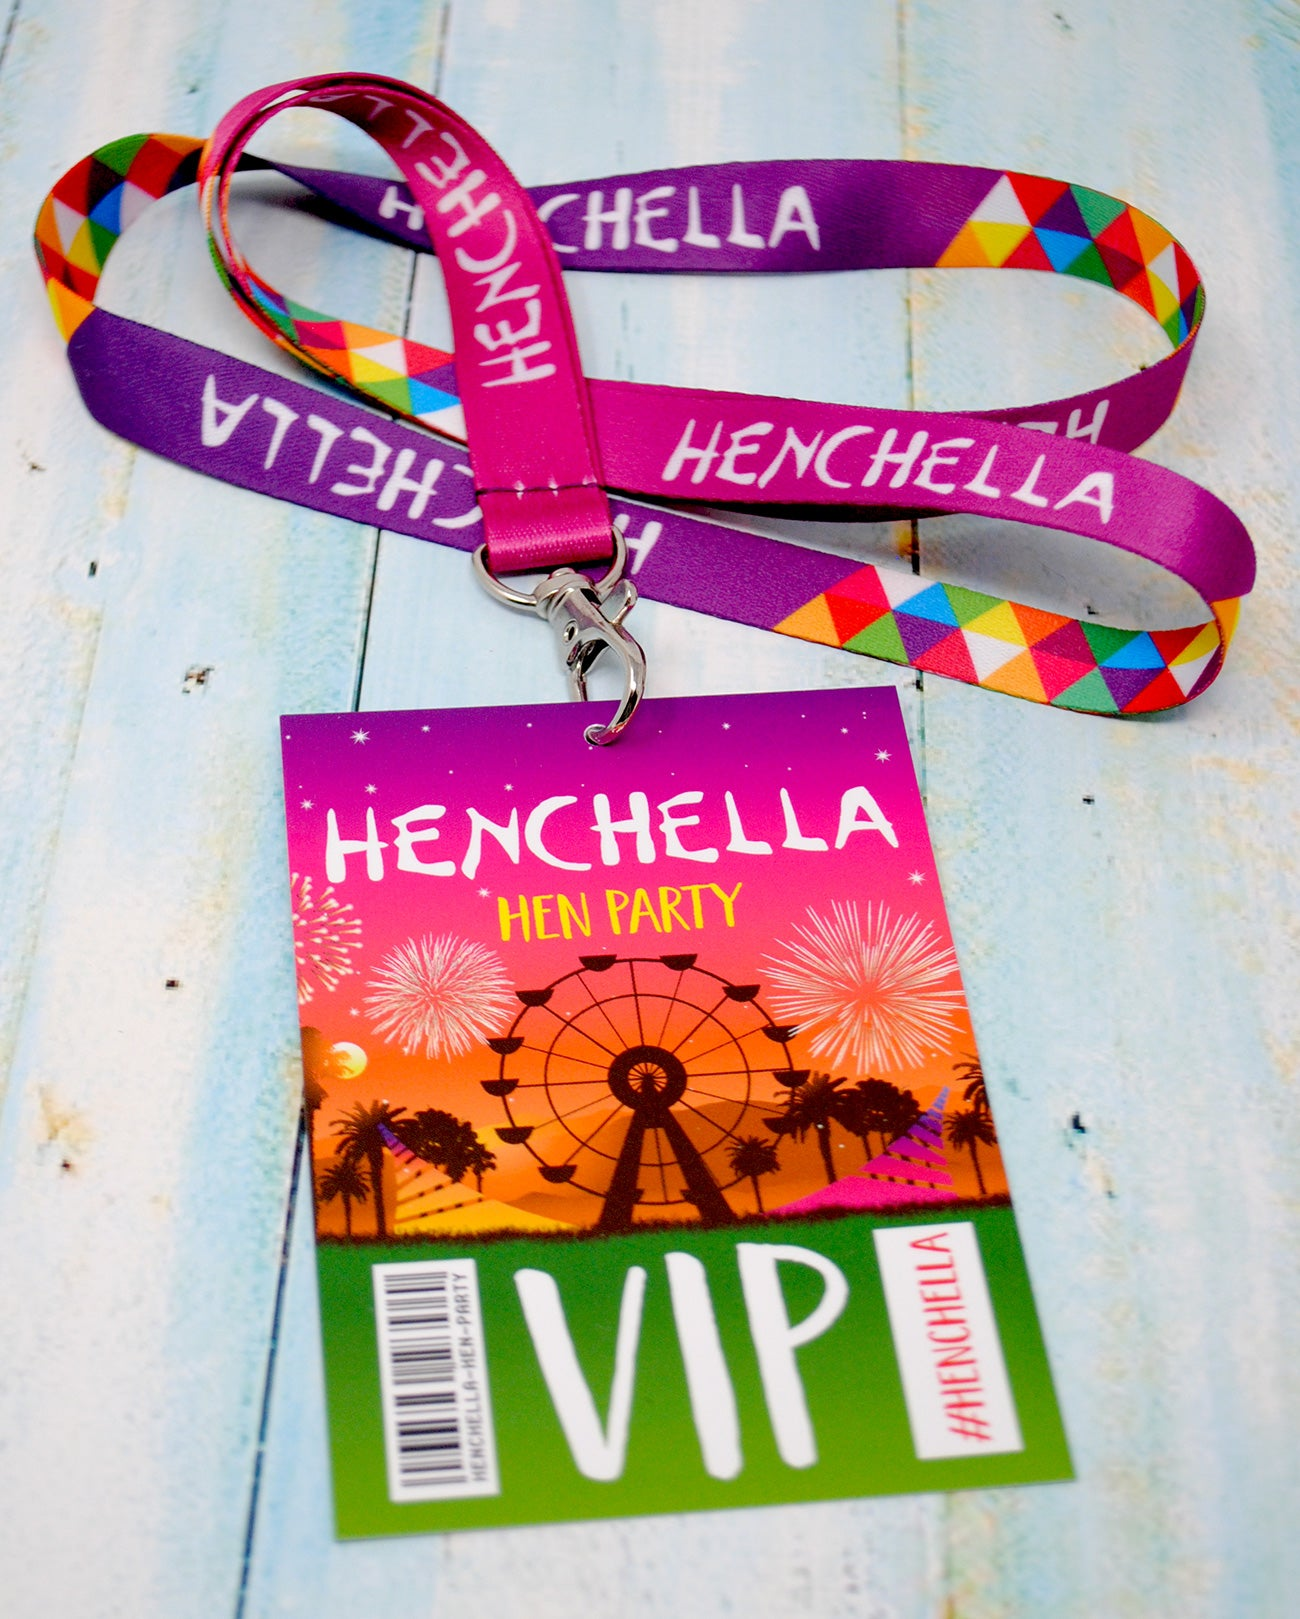 henchella hen party vip pass lanyard accessories